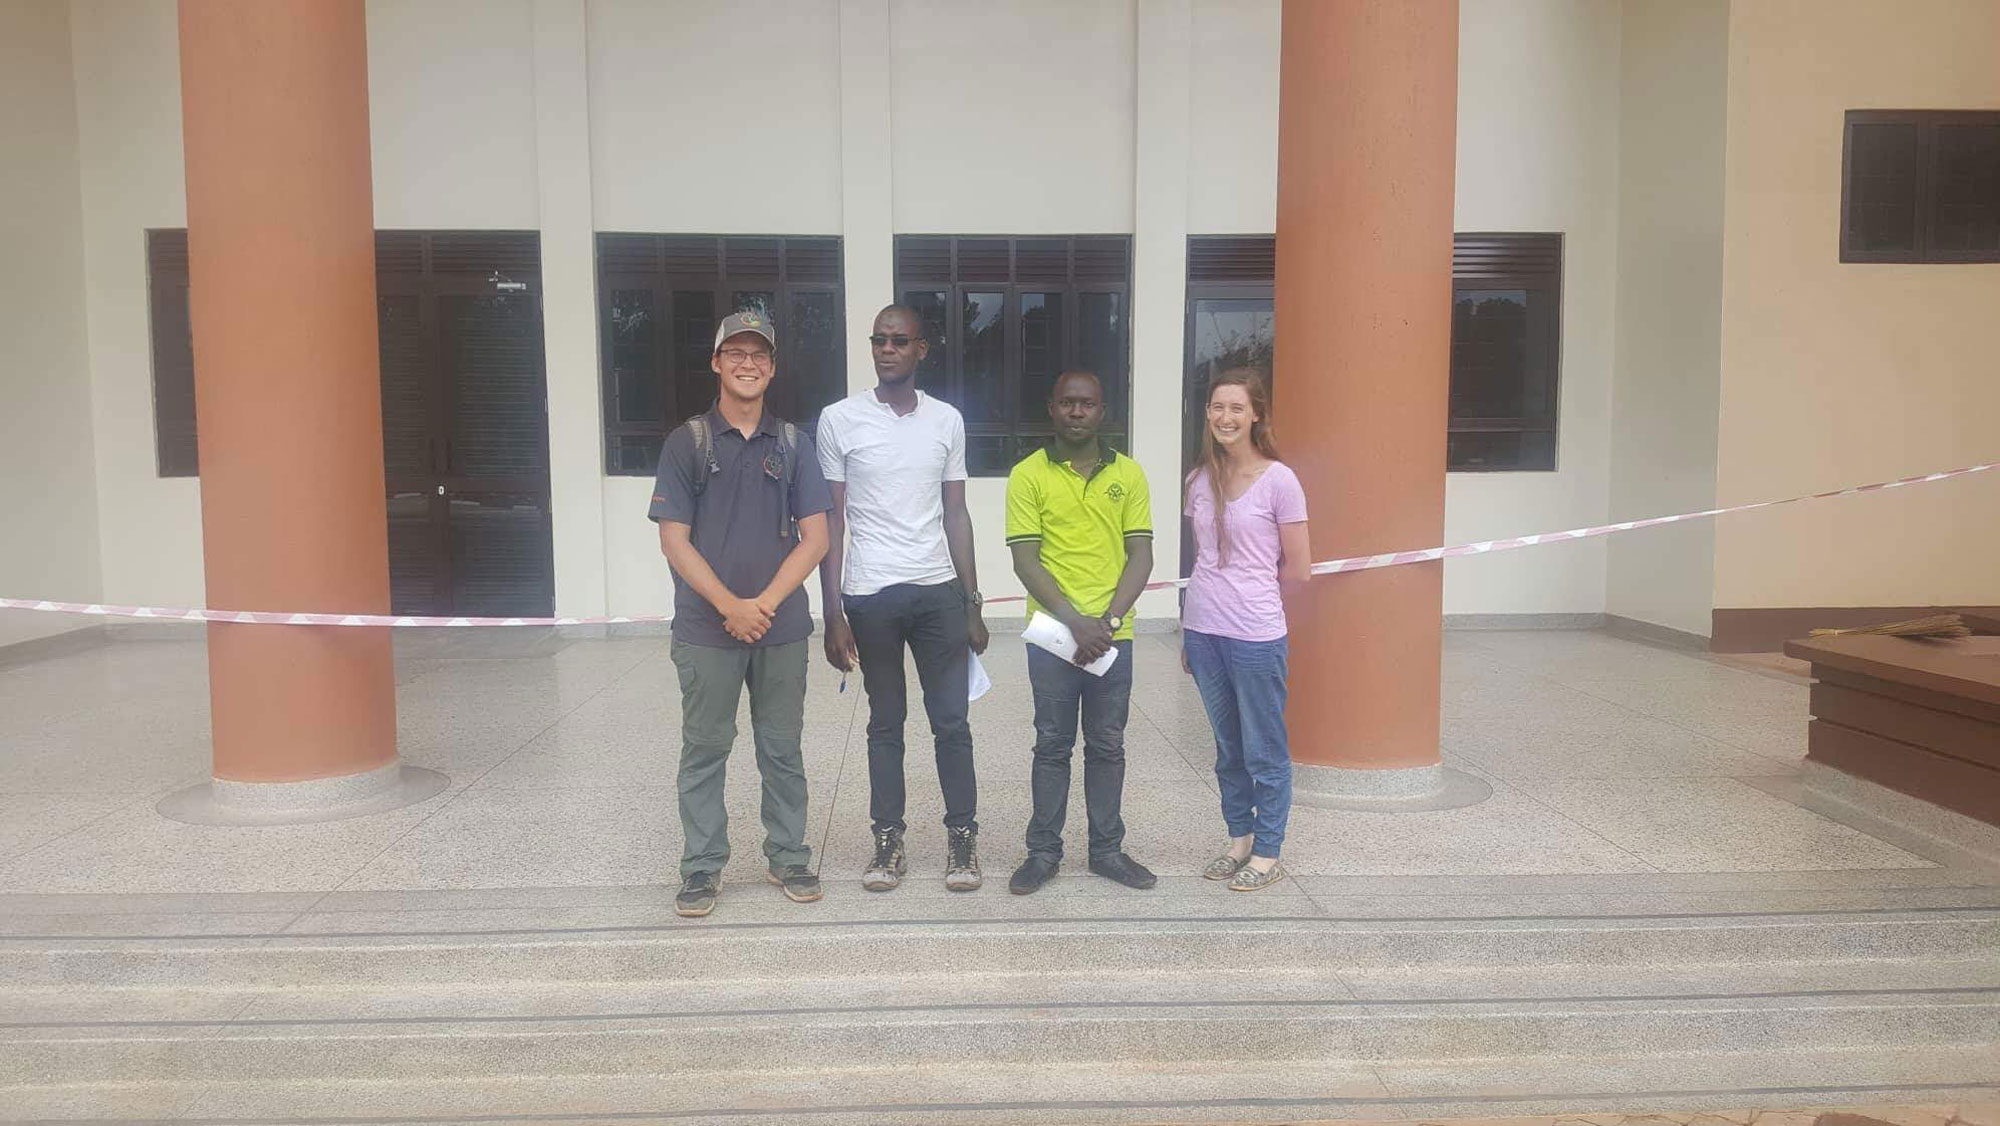 Nicholas, Disika, Ryan, and Catherine standing in front of the new building